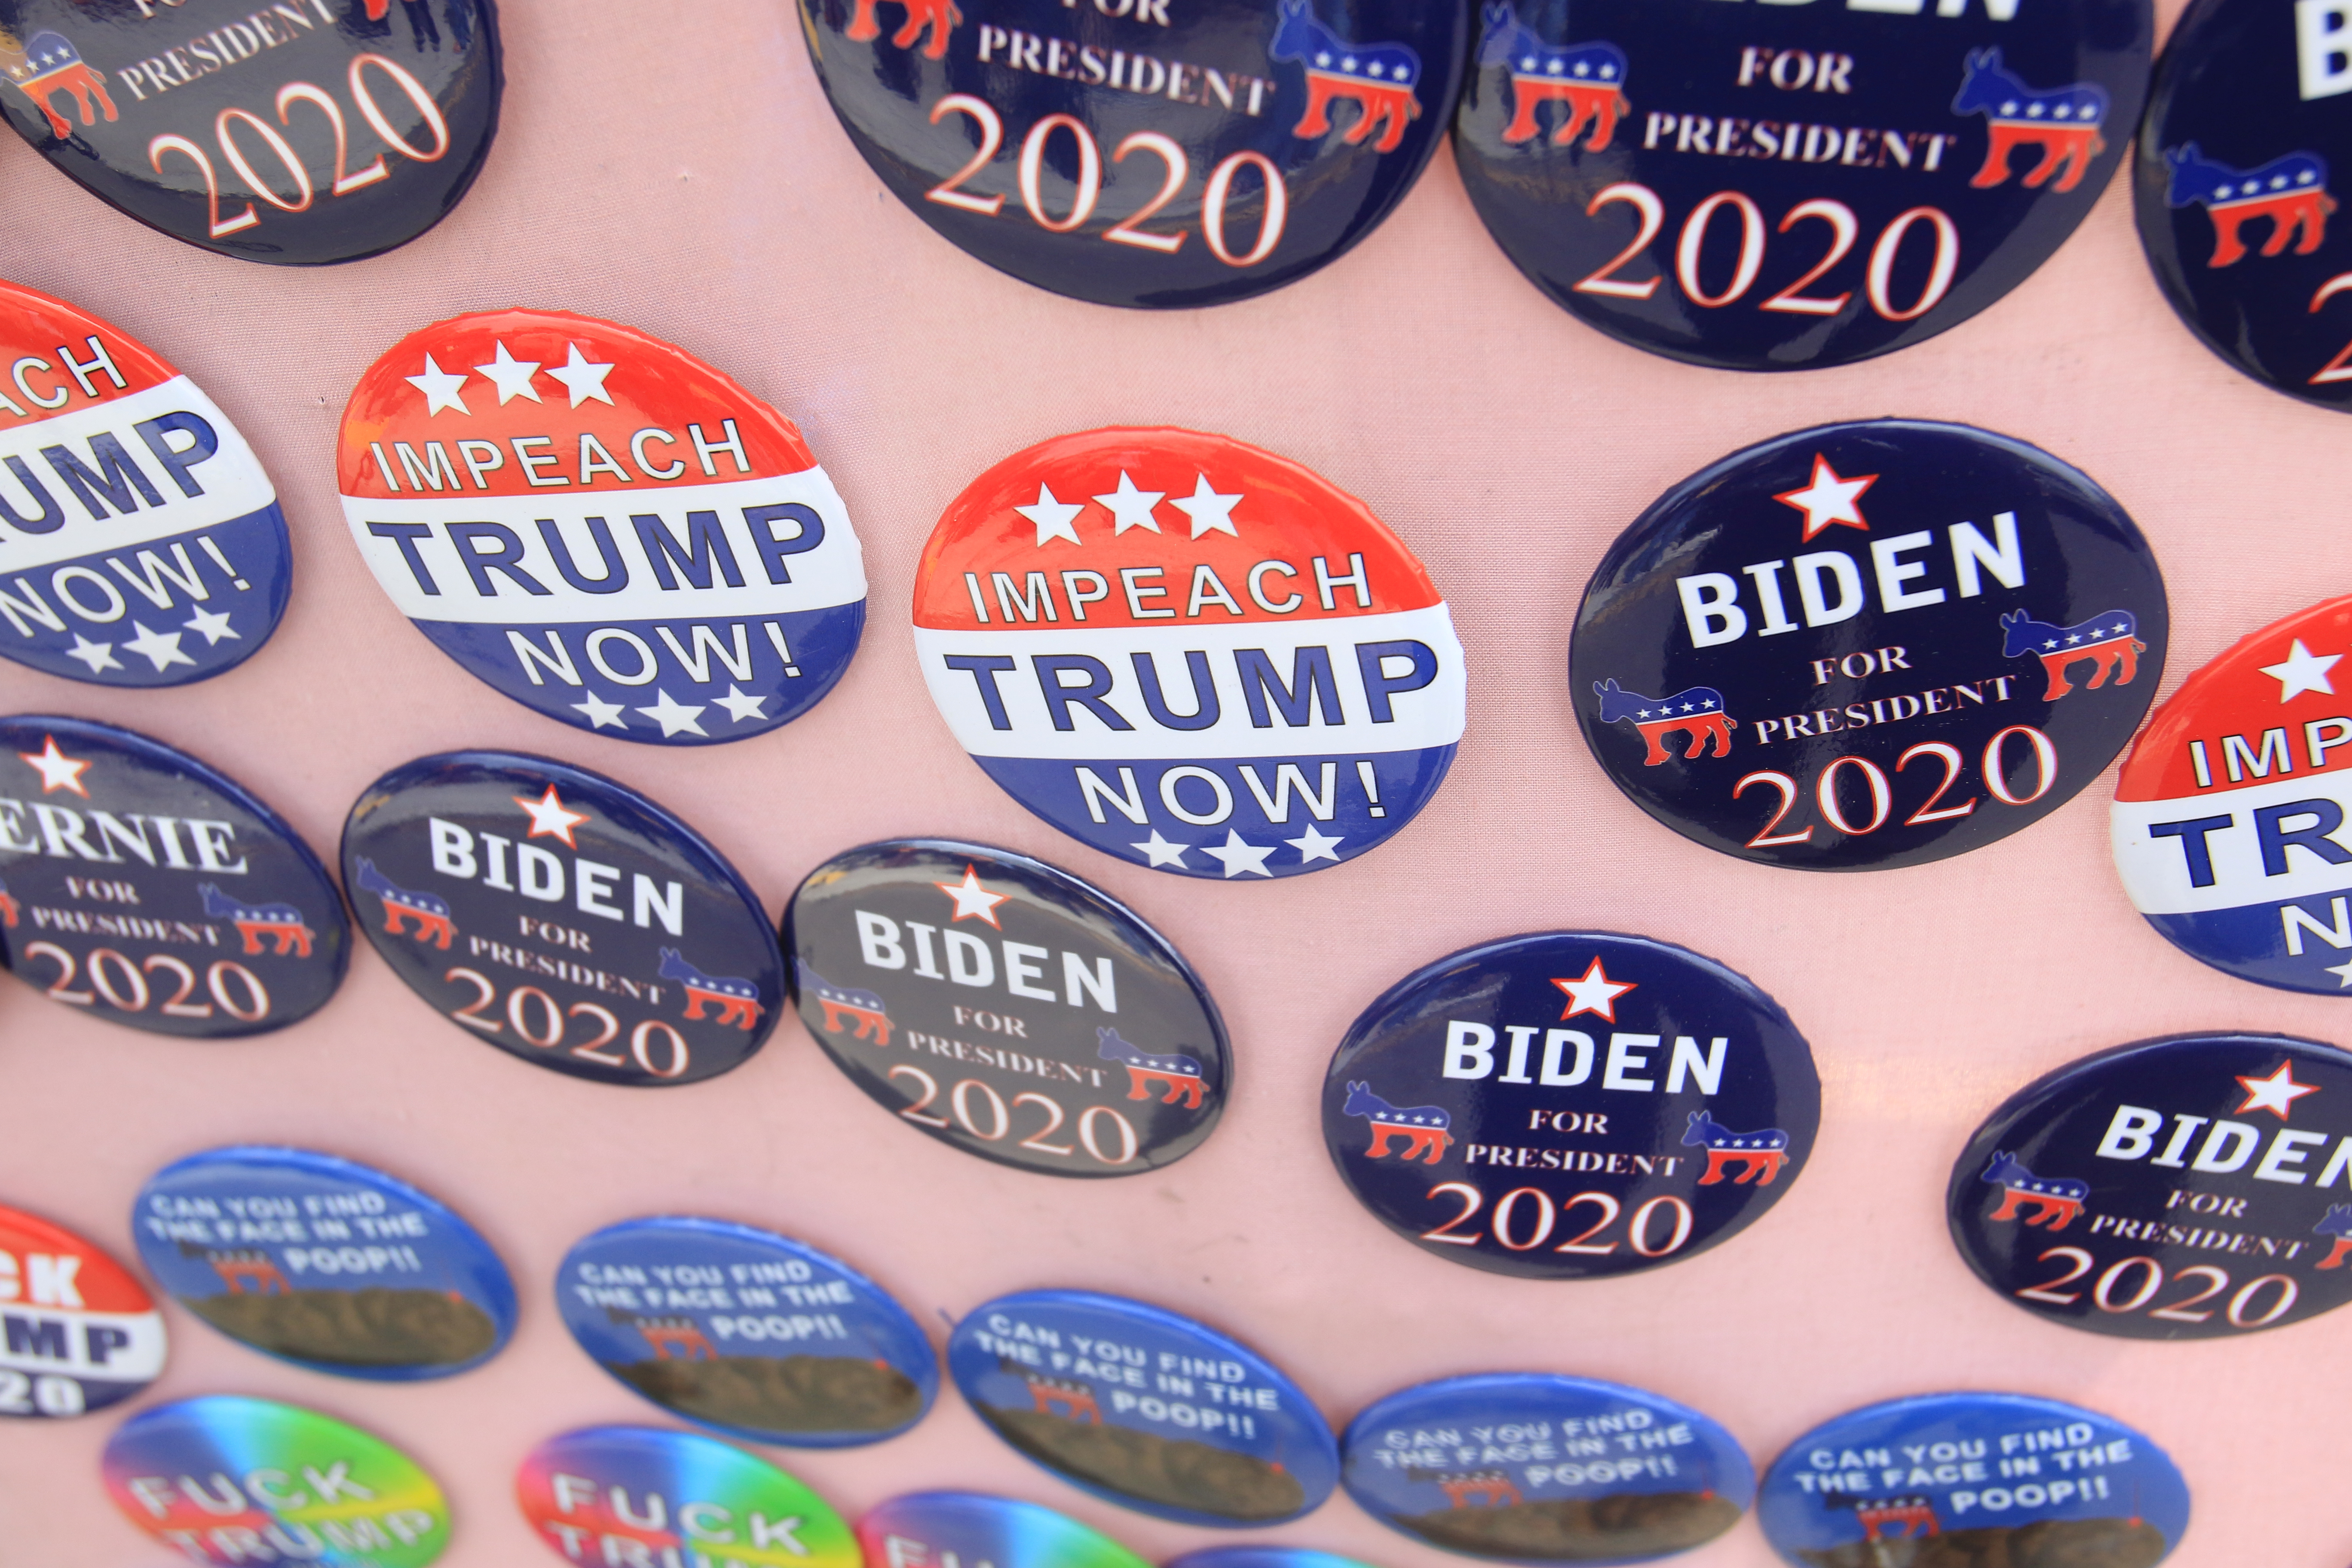 Best Bidets 2020 Campaign 2020: Who's Holding On, Surging, Fuming? | Voice of